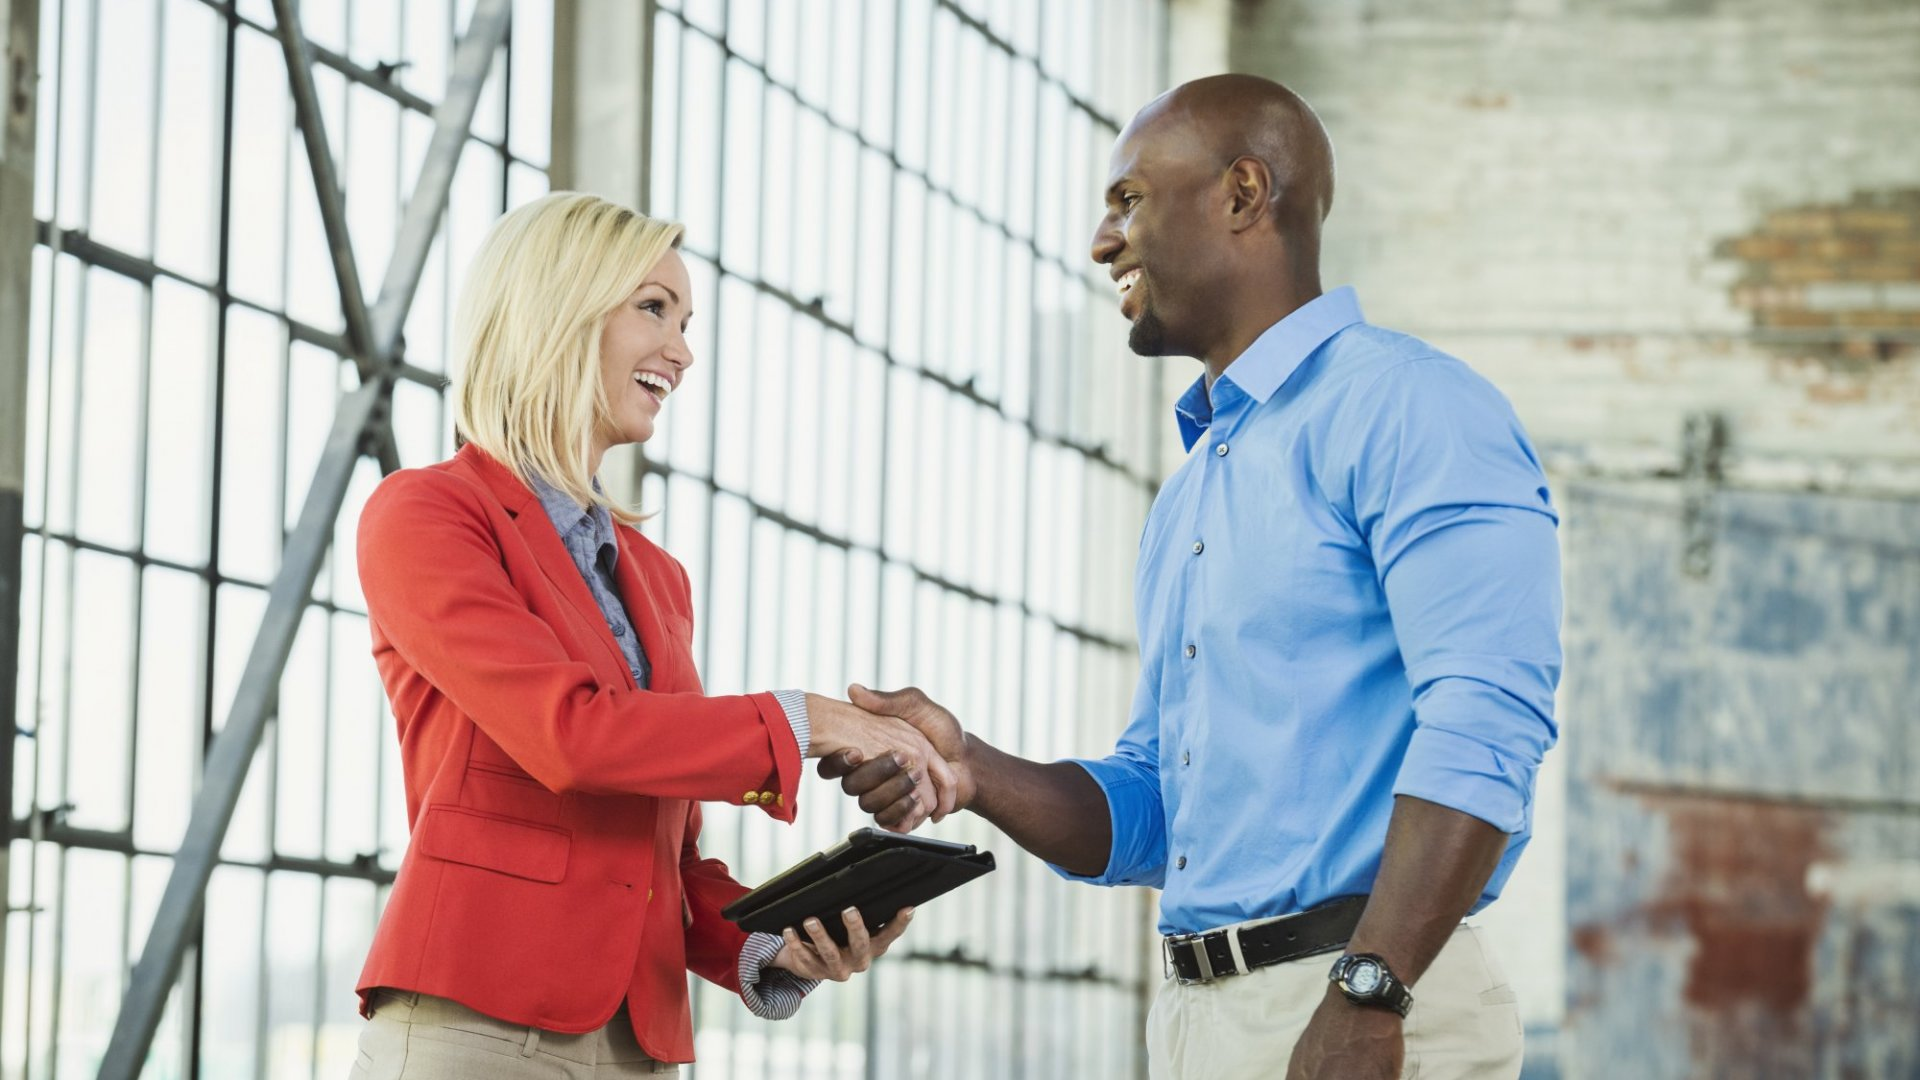 9 Things Successful People Do When They Meet Someone